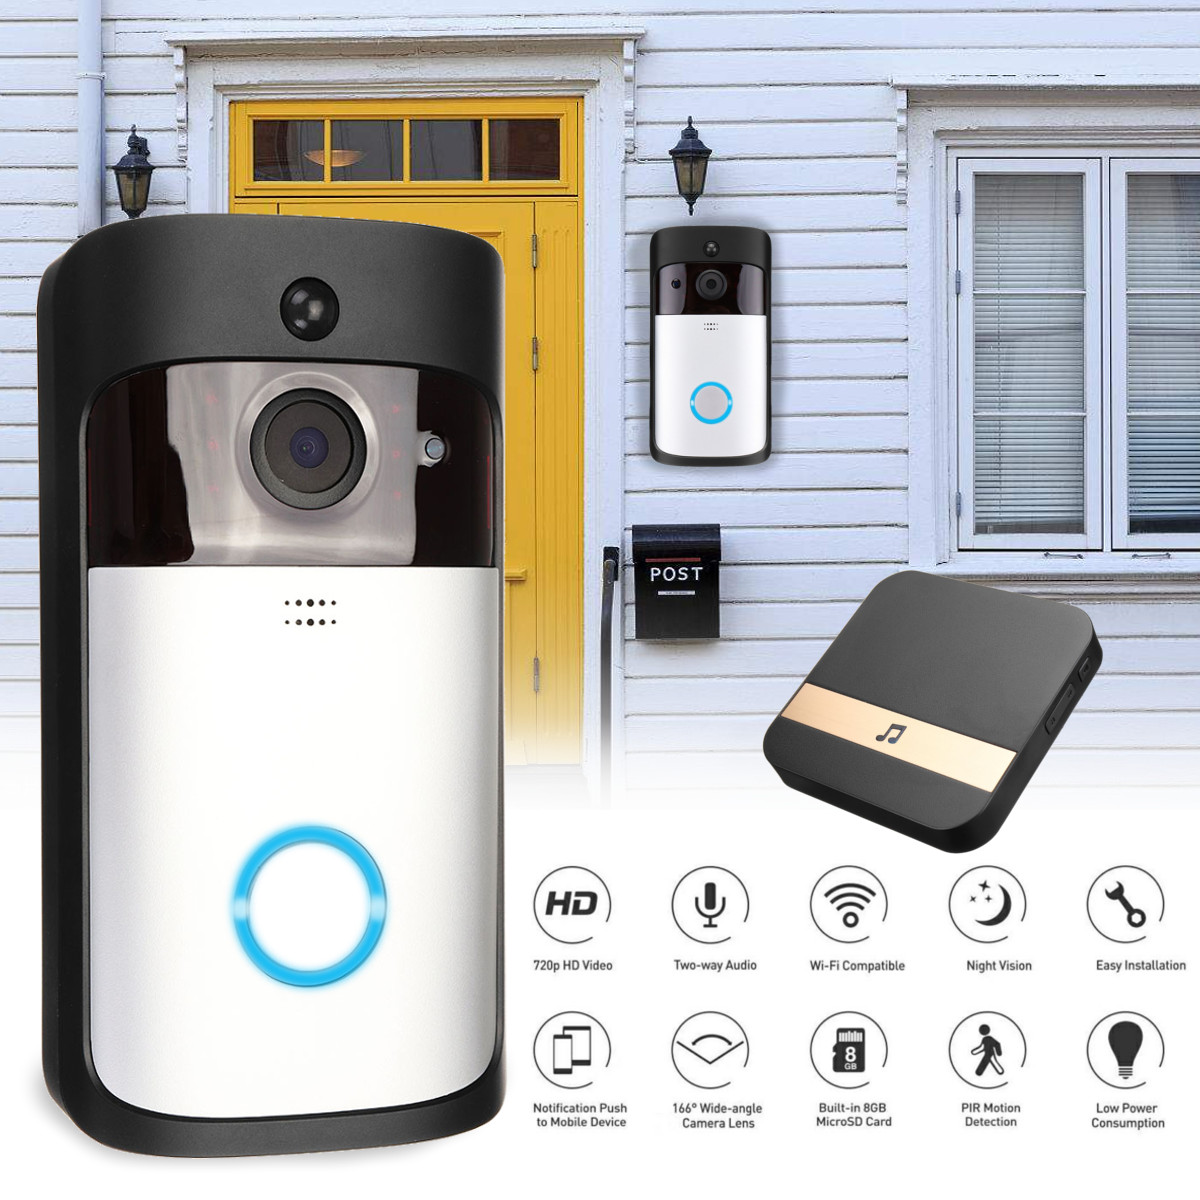 Wireless 1080P Video Doorbell Camera Battery Support PIR Detect Night Vision with DingDongWireless 1080P Video Doorbell Camera Battery Support PIR Detect Night Vision with DingDong